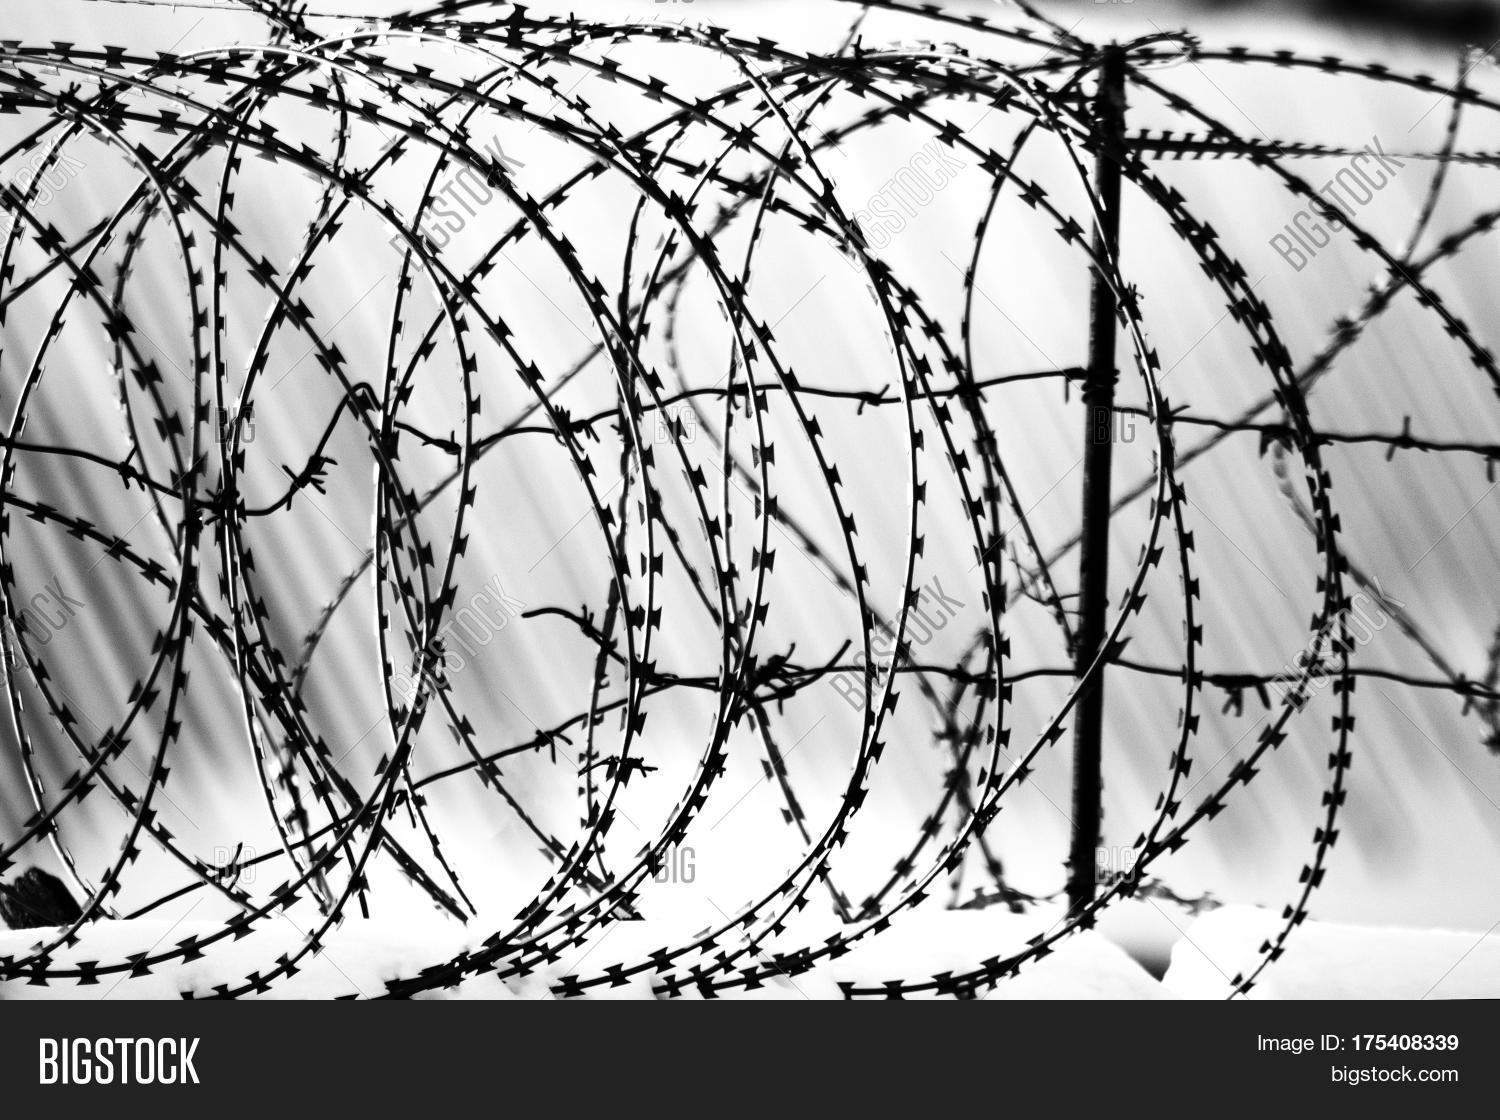 Barbed Wire Fence Image Photo Free Trial Bigstock